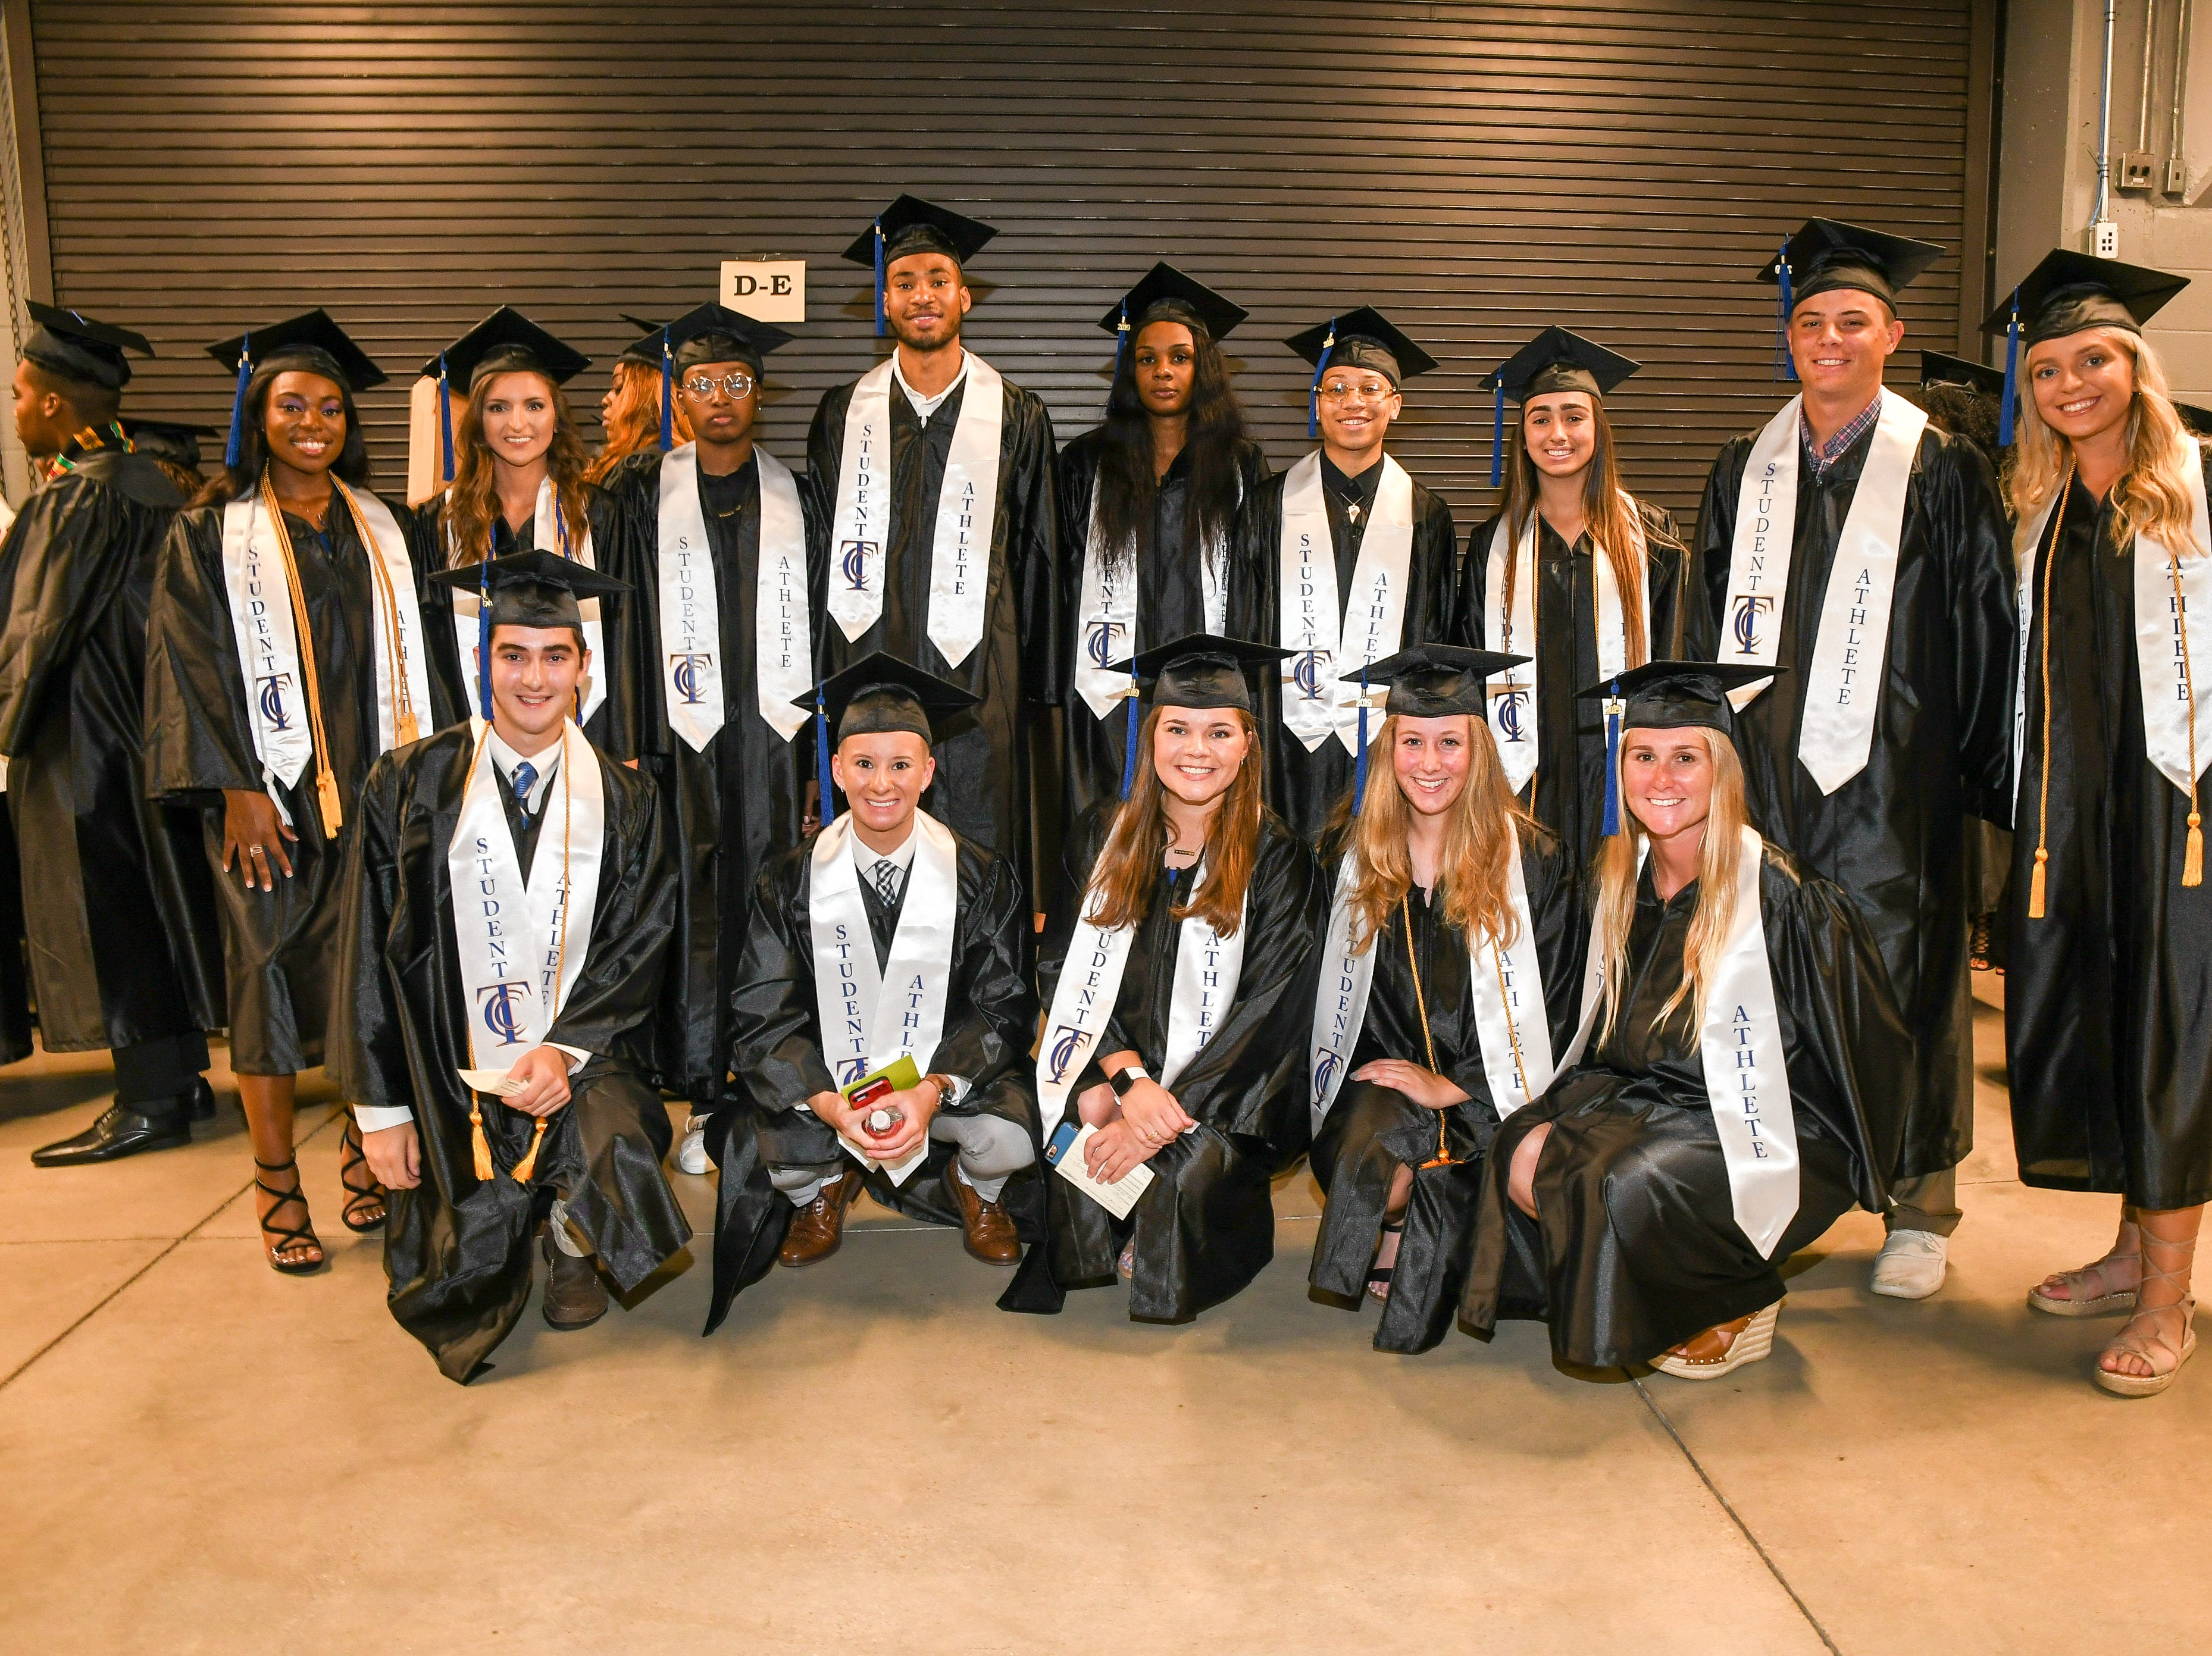 Tallahassee Community College student athletes pose for a photo at the spring commencement ceremony at Donald L. Tucker Civic Center Saturday, May 4, 2019.